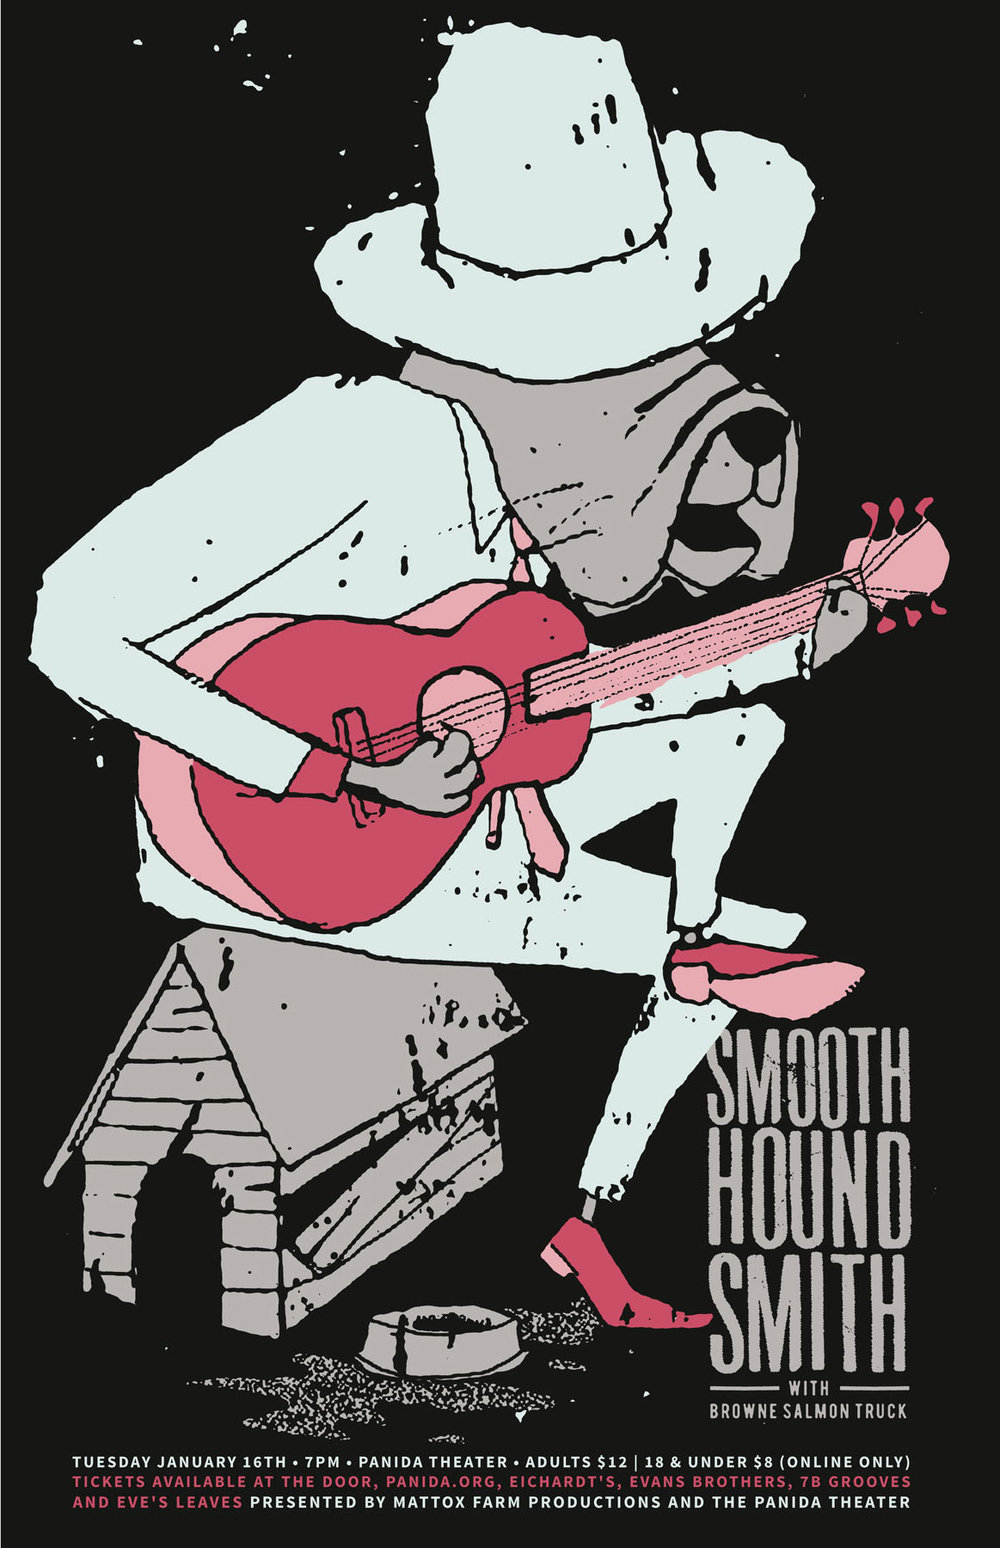 MATTOX_smooth_hound_smith_poster.jpg